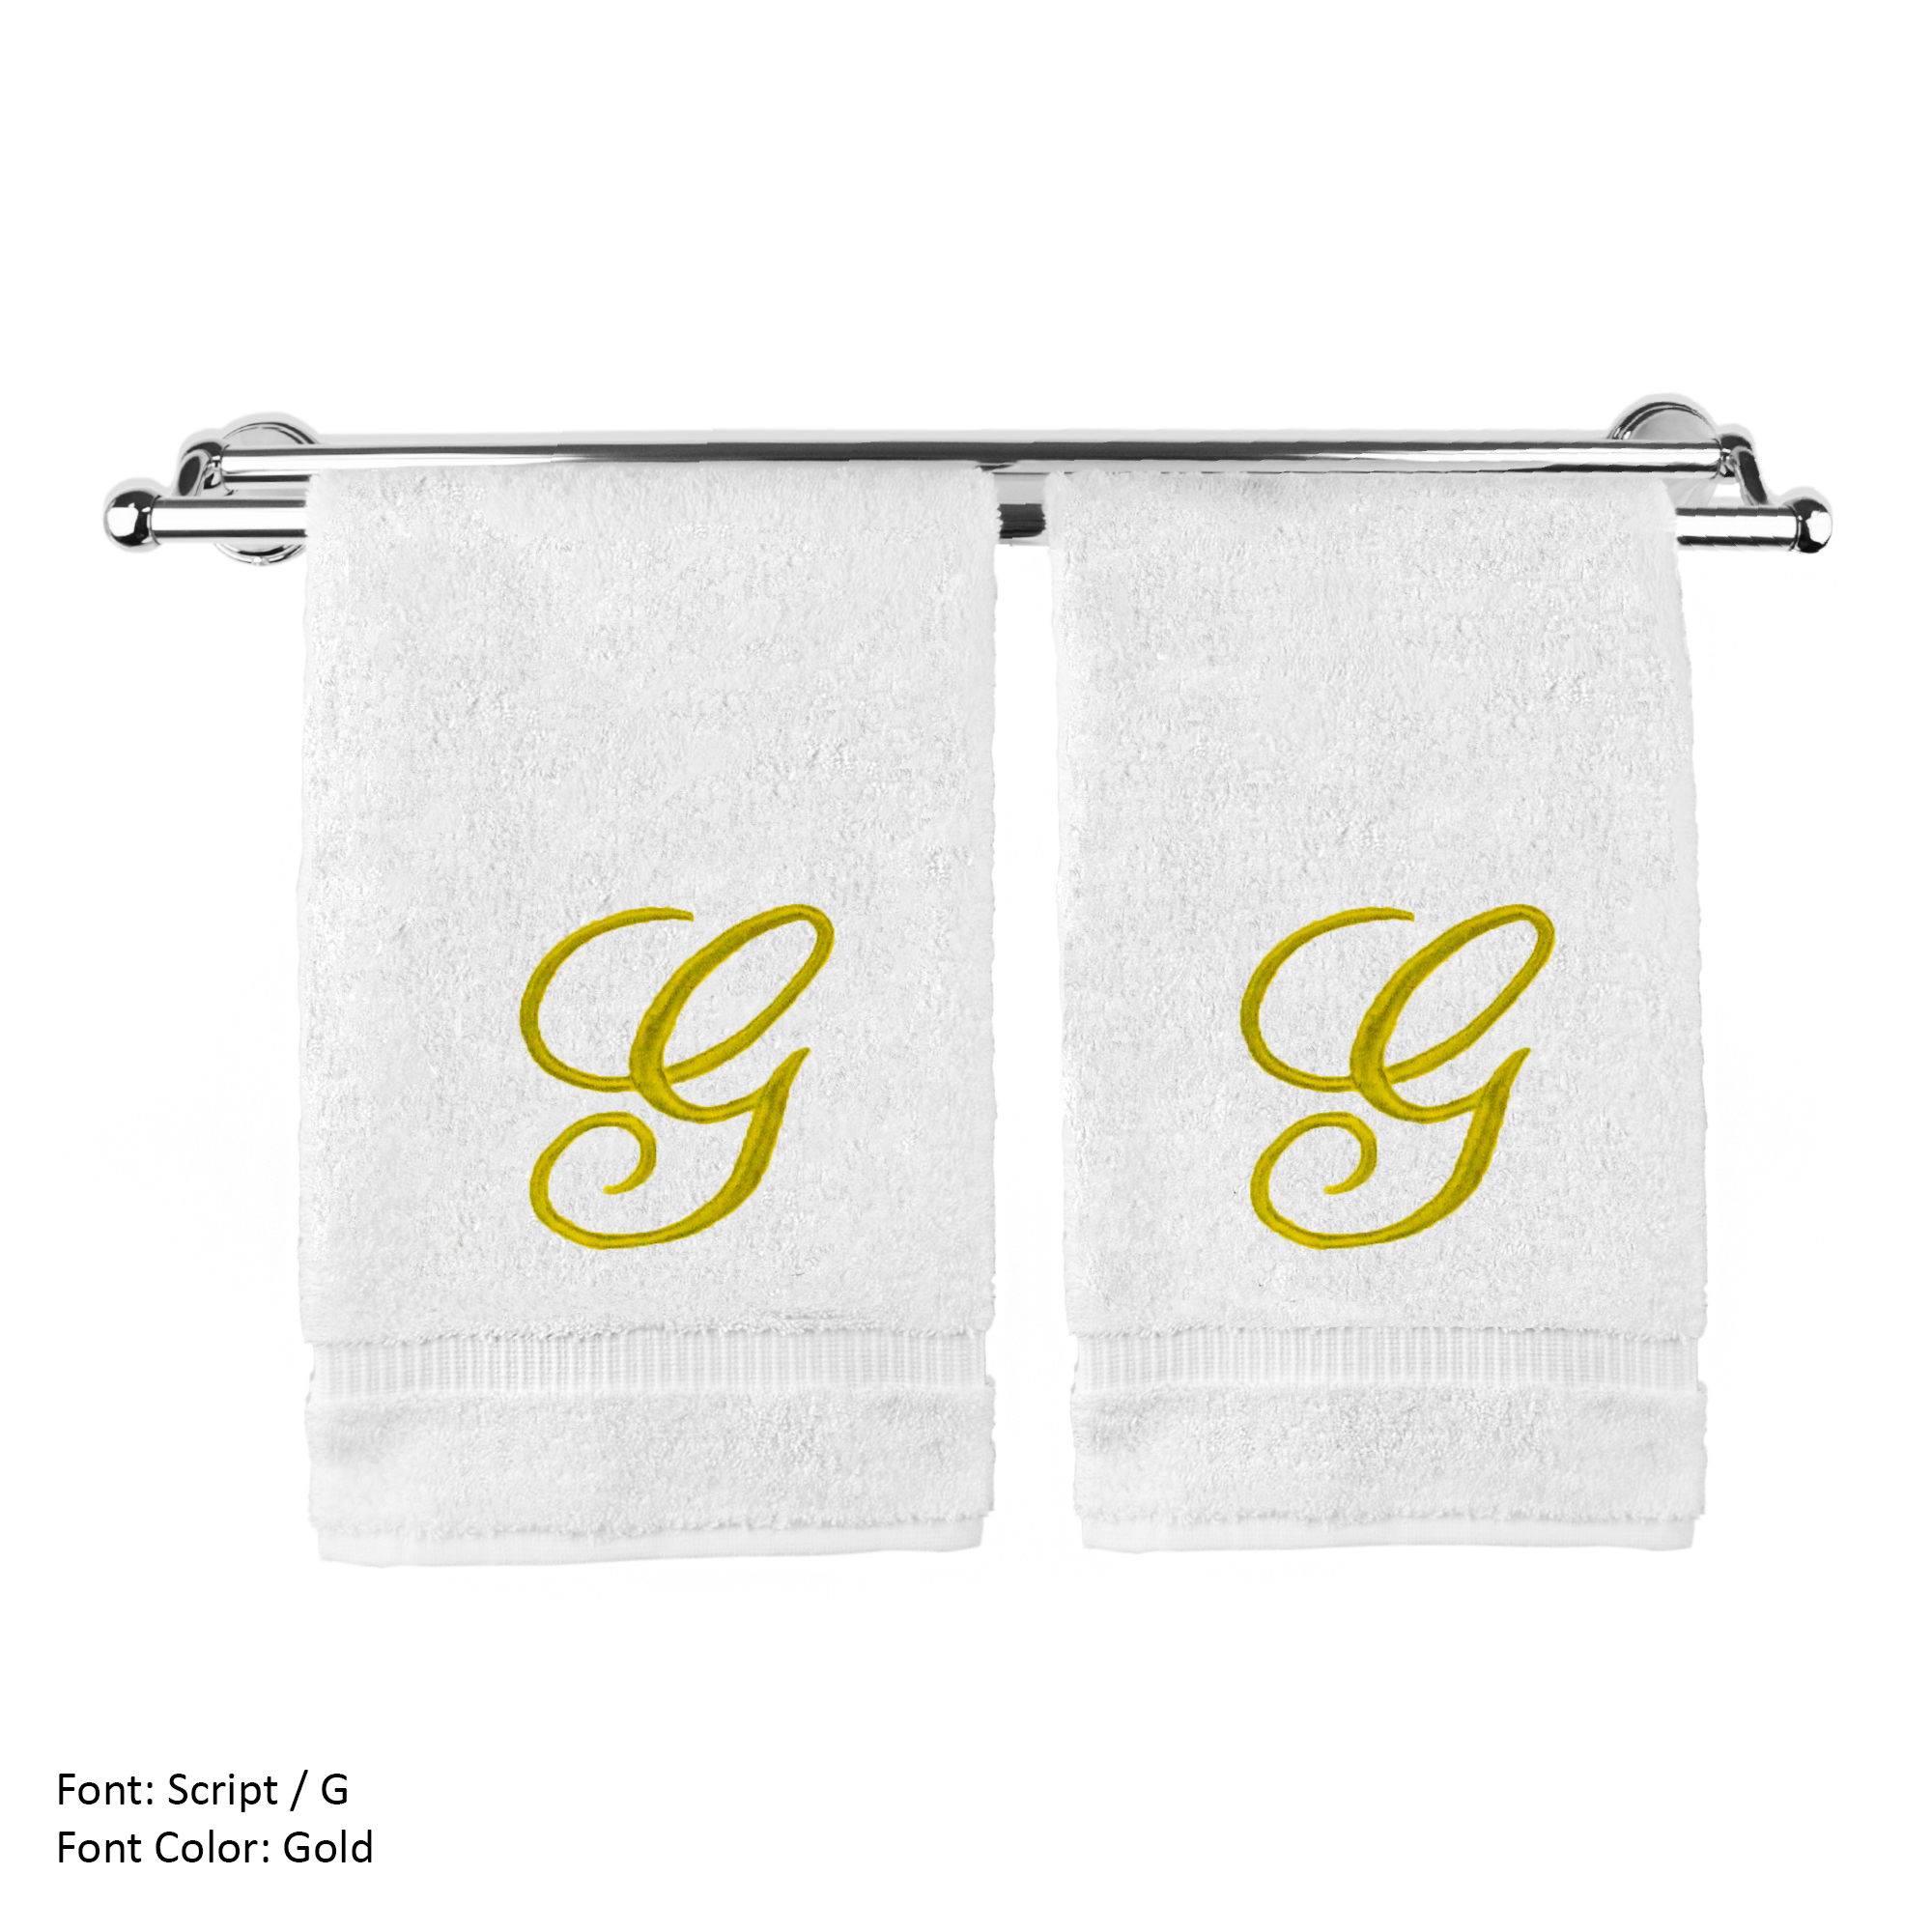 Monogrammed Washcloth Towel, Personalized Gift, 13x13 Inches - Set of 2 - Gold Script Embroidered Towel - Extra Absorbent 100% Turkish Cotton - Soft Terry Finish - Initial G White